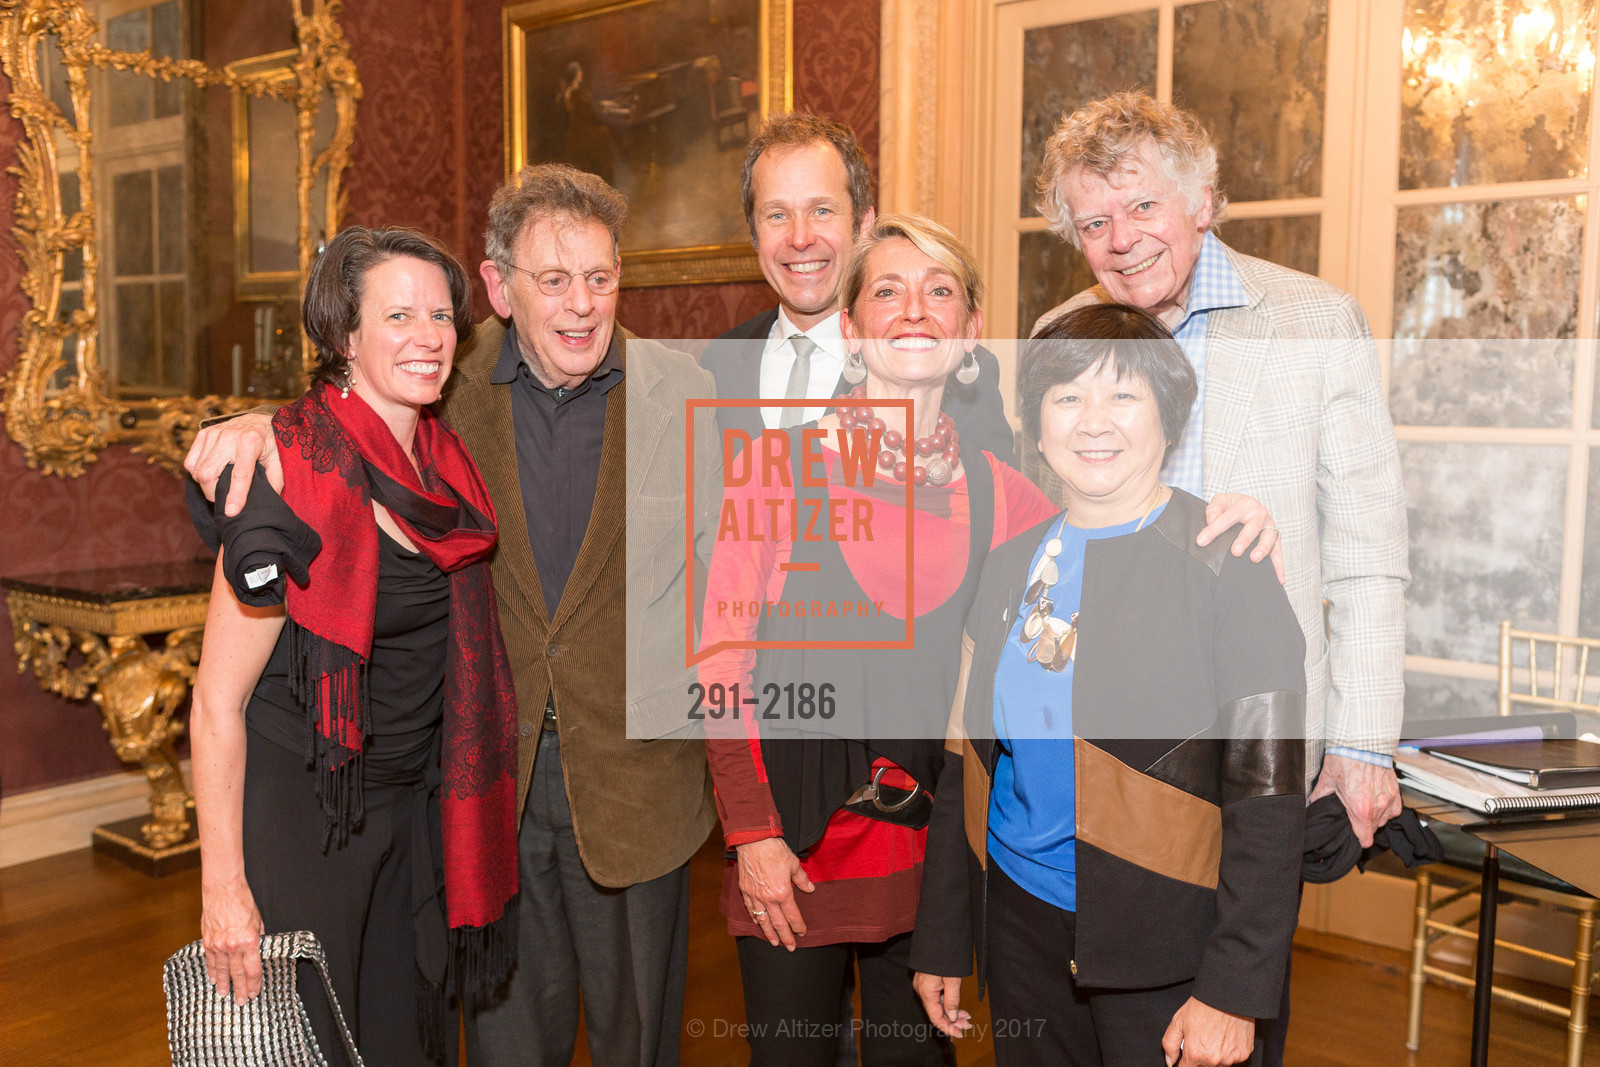 Amy Seiwert, Philip Glass, Brian Staufenbiel, Nicole Paiement, Gordon Getty, Debbie Chinn, Photo #291-2186